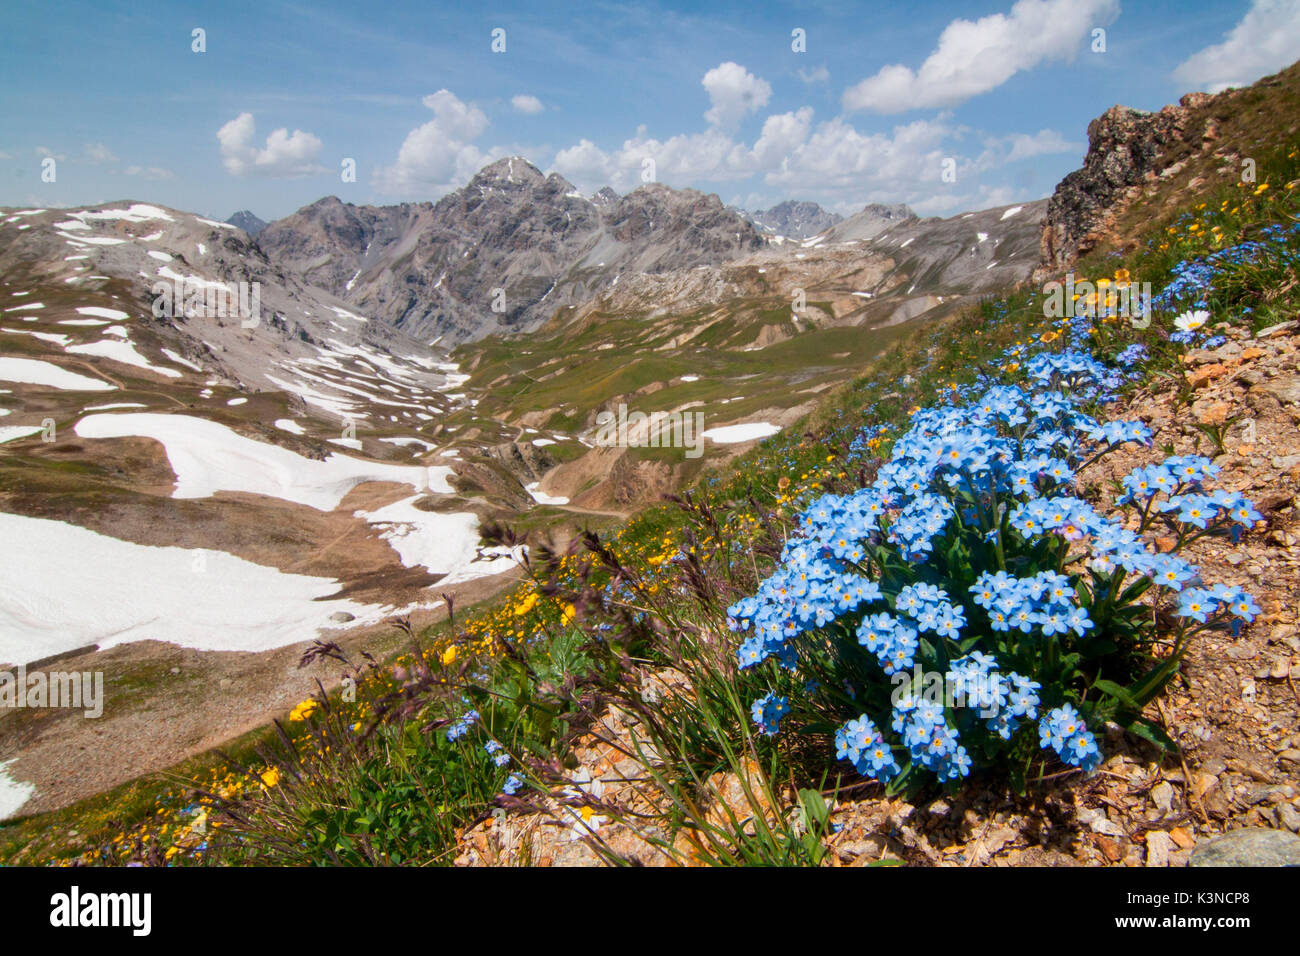 Forgot-me-not flowering in Forcola valley, Stelvio, Valtellina, Lombardy - Stock Image